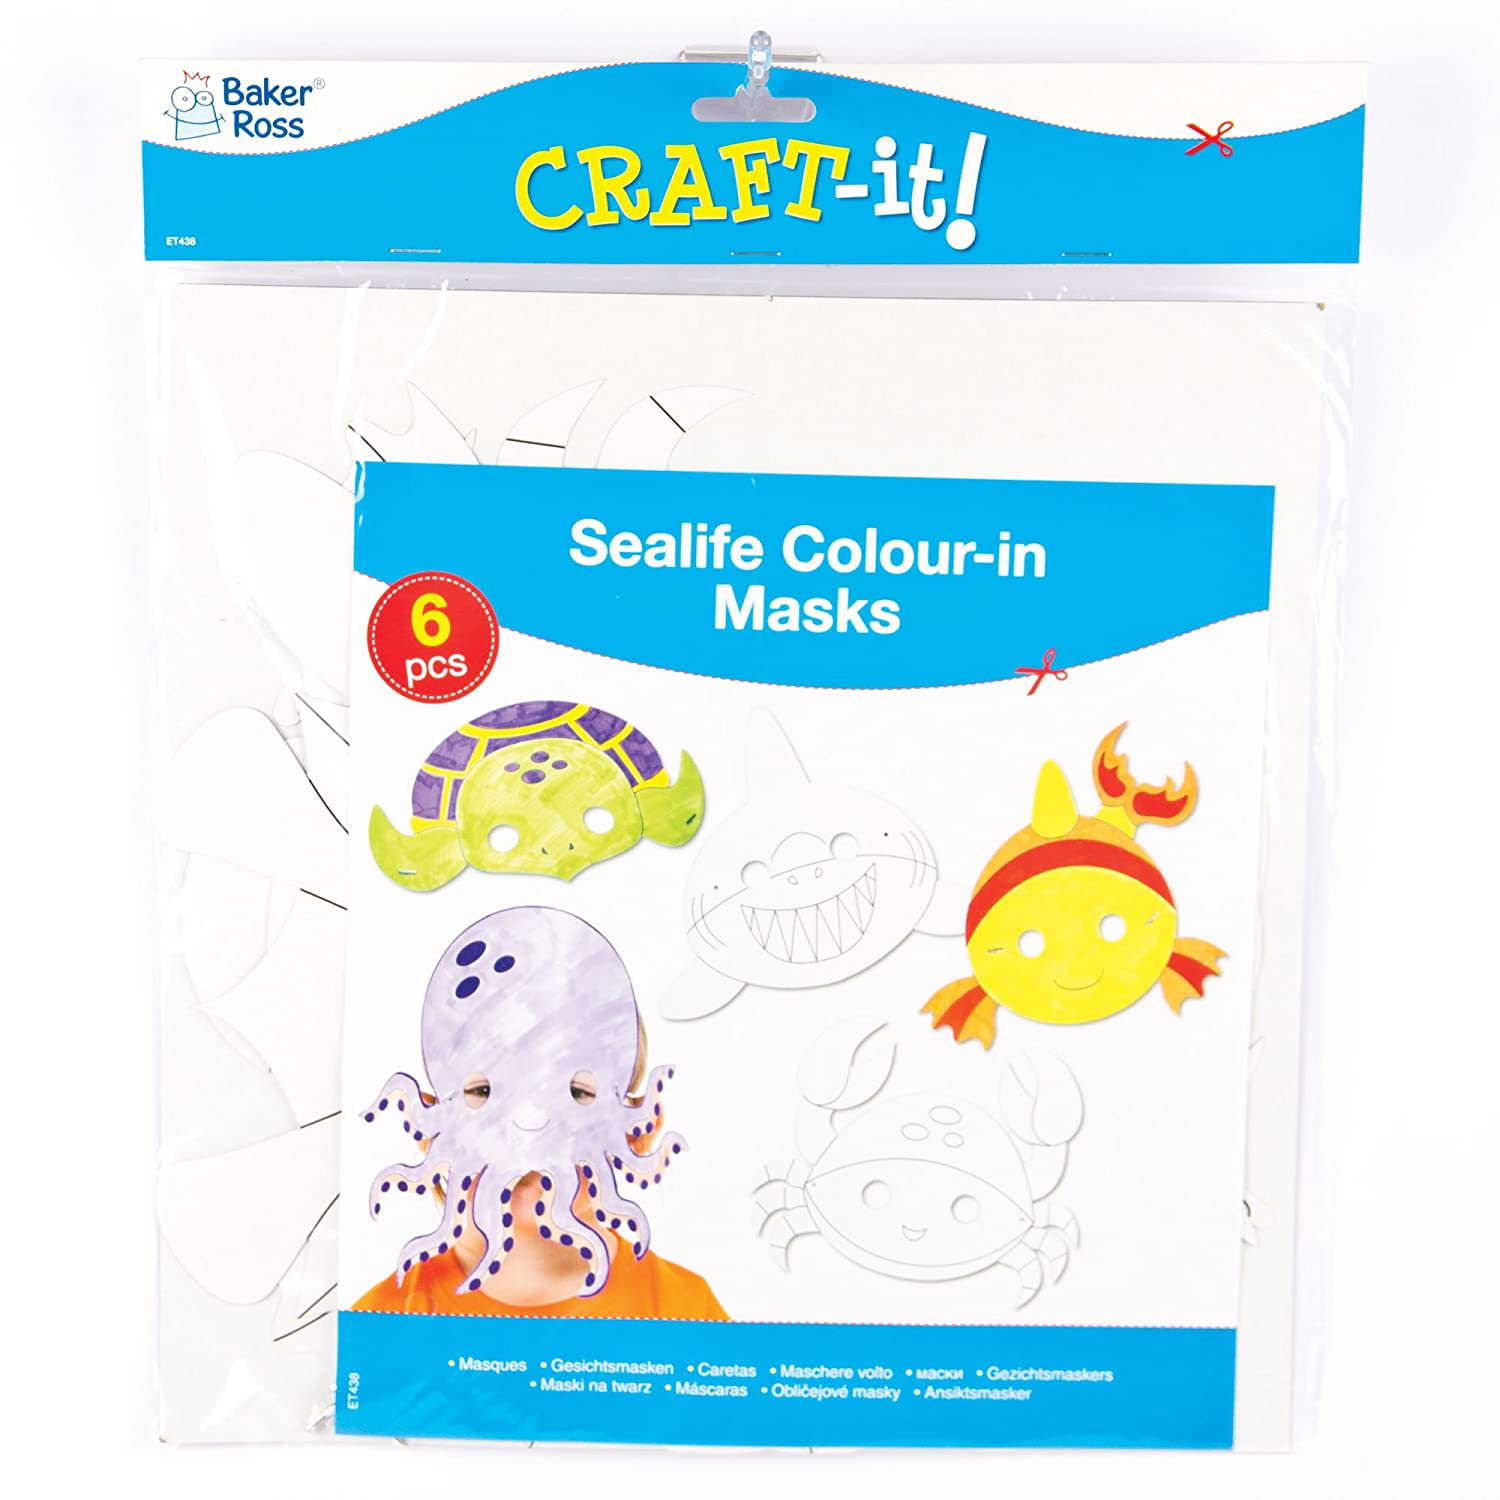 Amazon.com: Sealife Animals Colour in Craft Masks for Children to Decorate & Wear as a Part of a Costume at a Fancy Dress Party (Pack of 6): Toys & Games